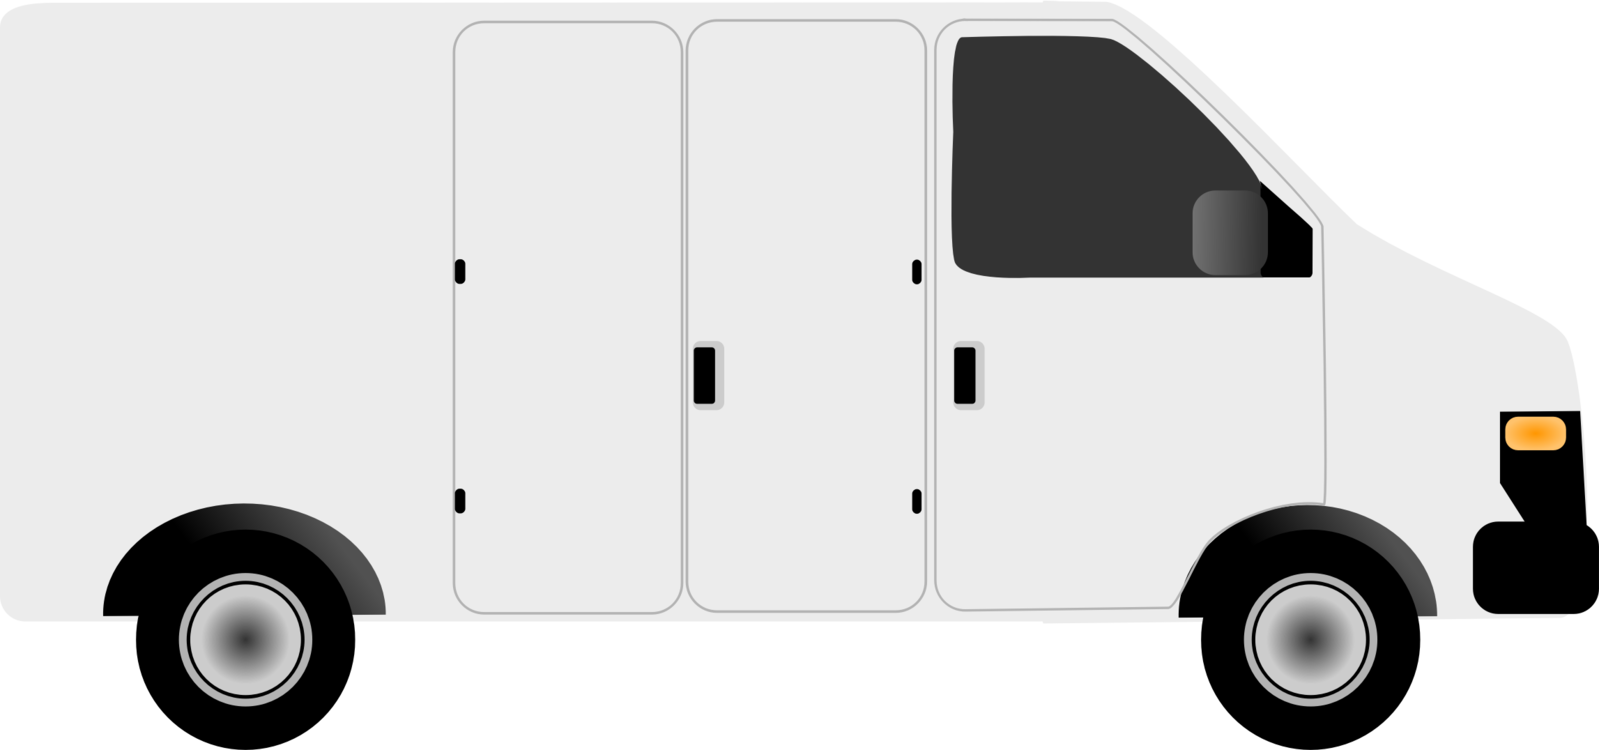 Minivan clipart van delivery. Ford transit courier car